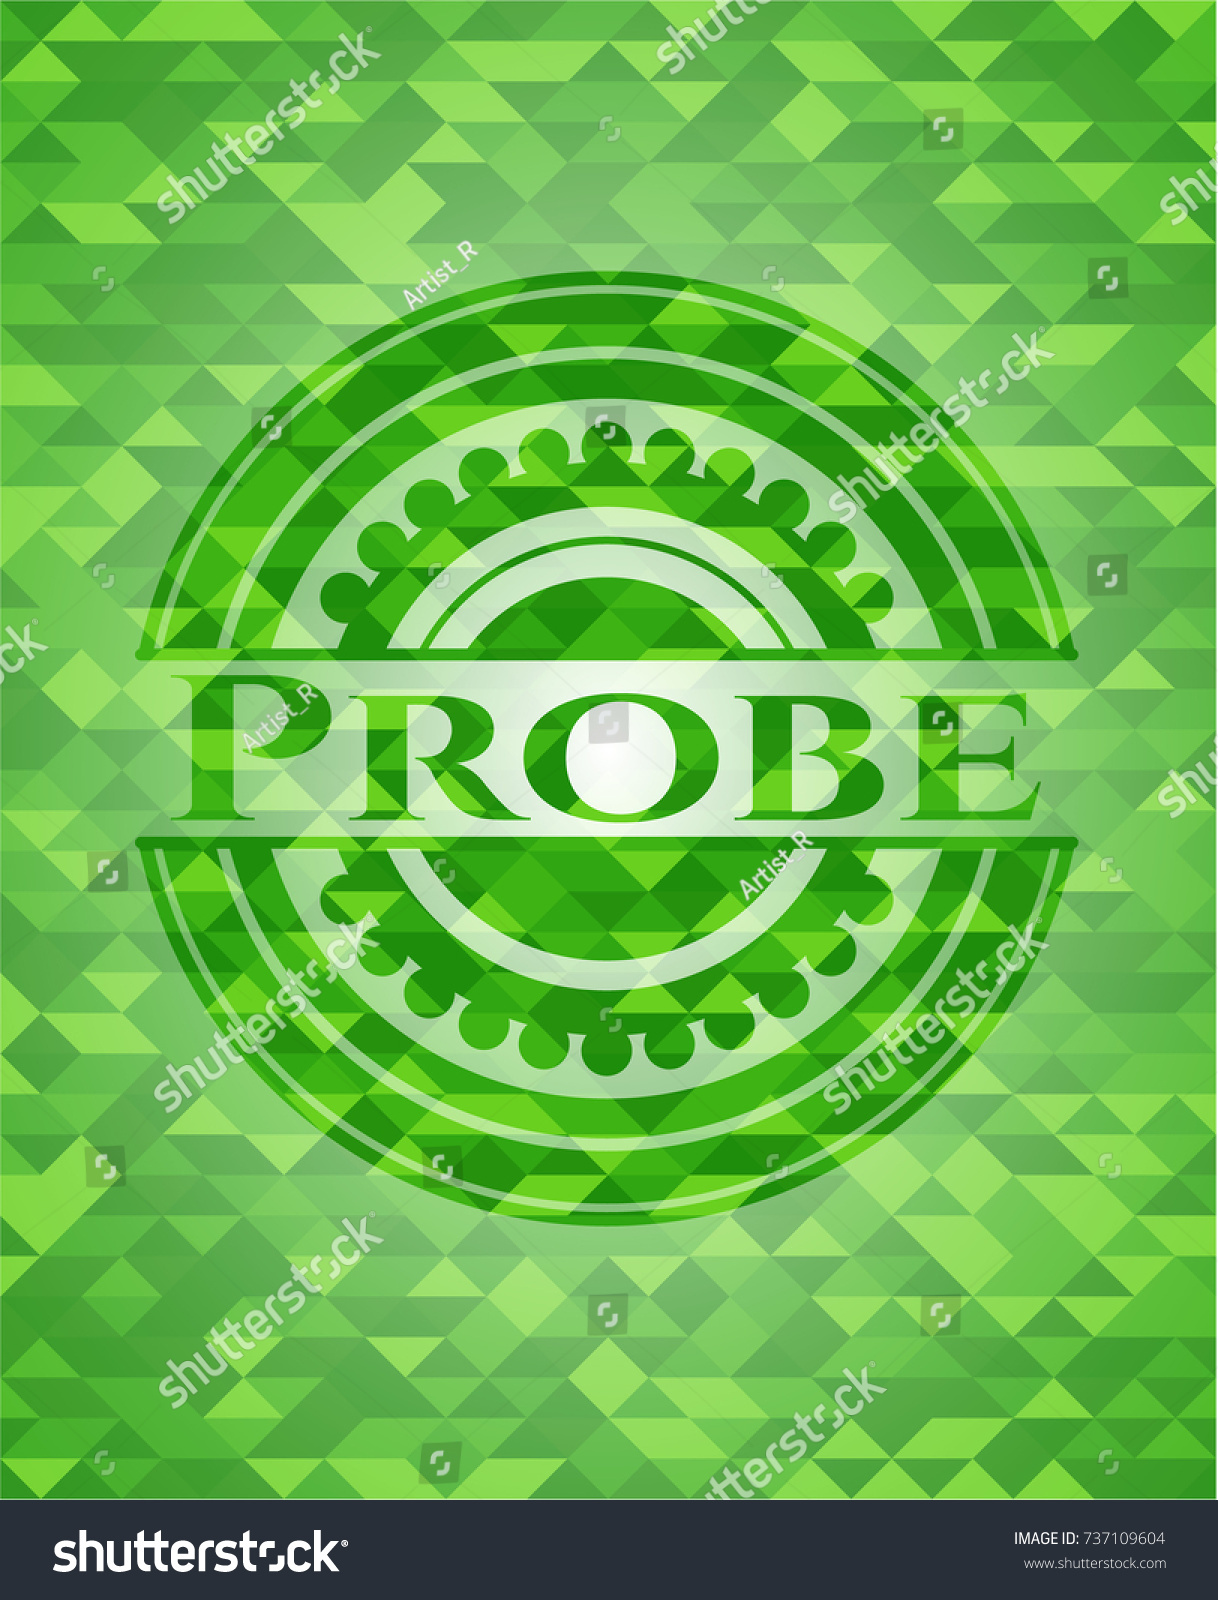 Probe Green Emblem Triangle Mosaic Background Stock Vector 737109604 ...